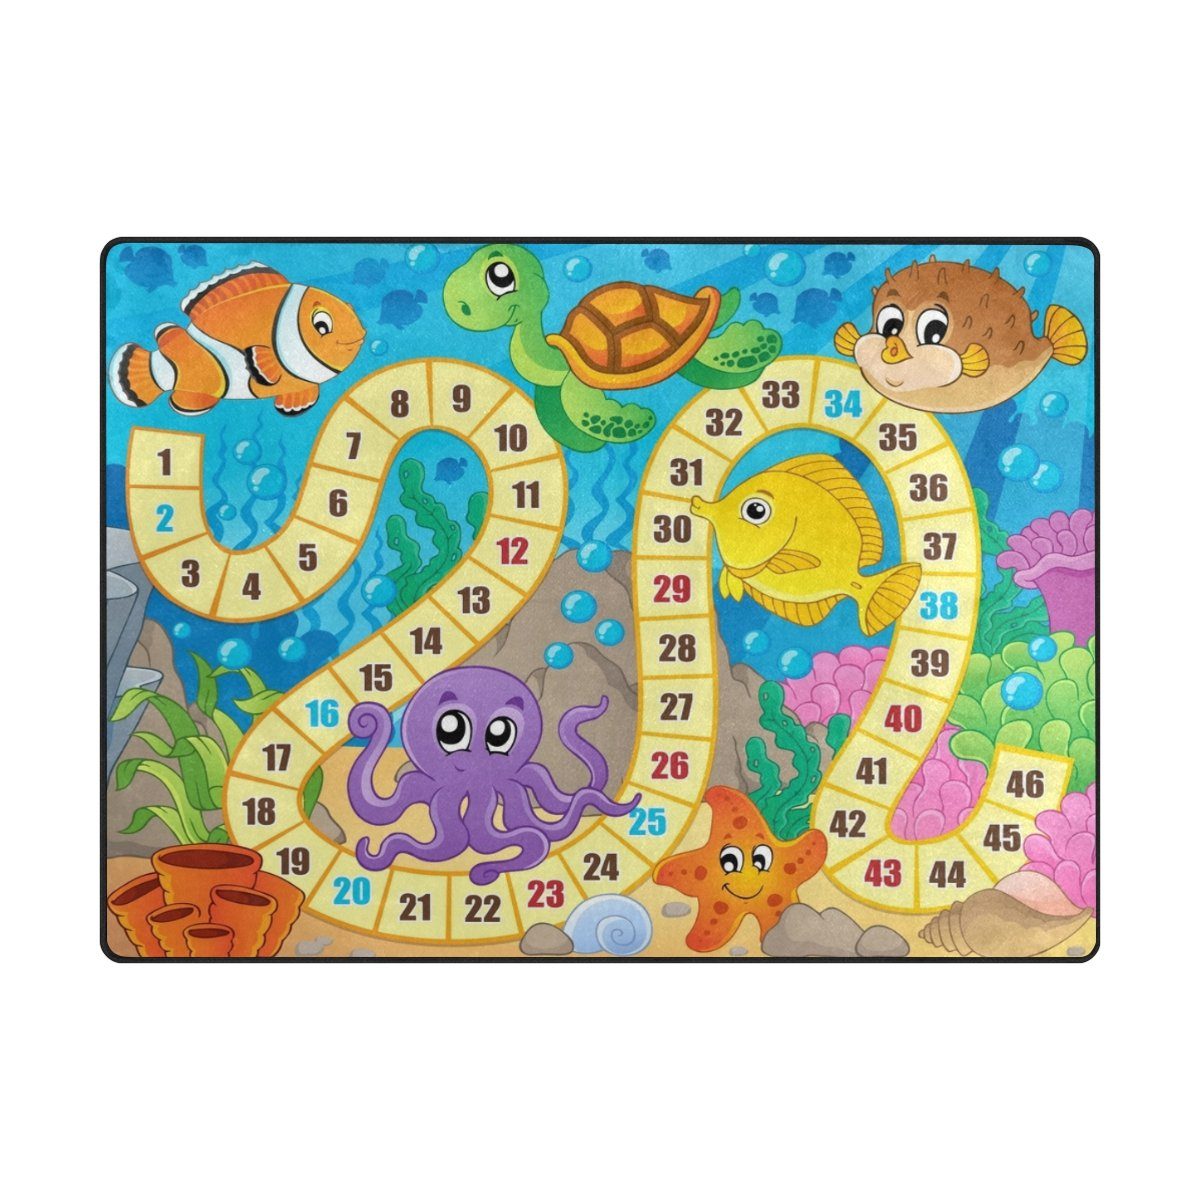 My Little Nest Kids Children Under Sea World Fish Turtle Coral Board Game Area Rug Baby Boys Girls Play Mat Non Slip Soft Educational Fun Carpets for Bedroom Classroom Nursery 4'10'' x 6'8''